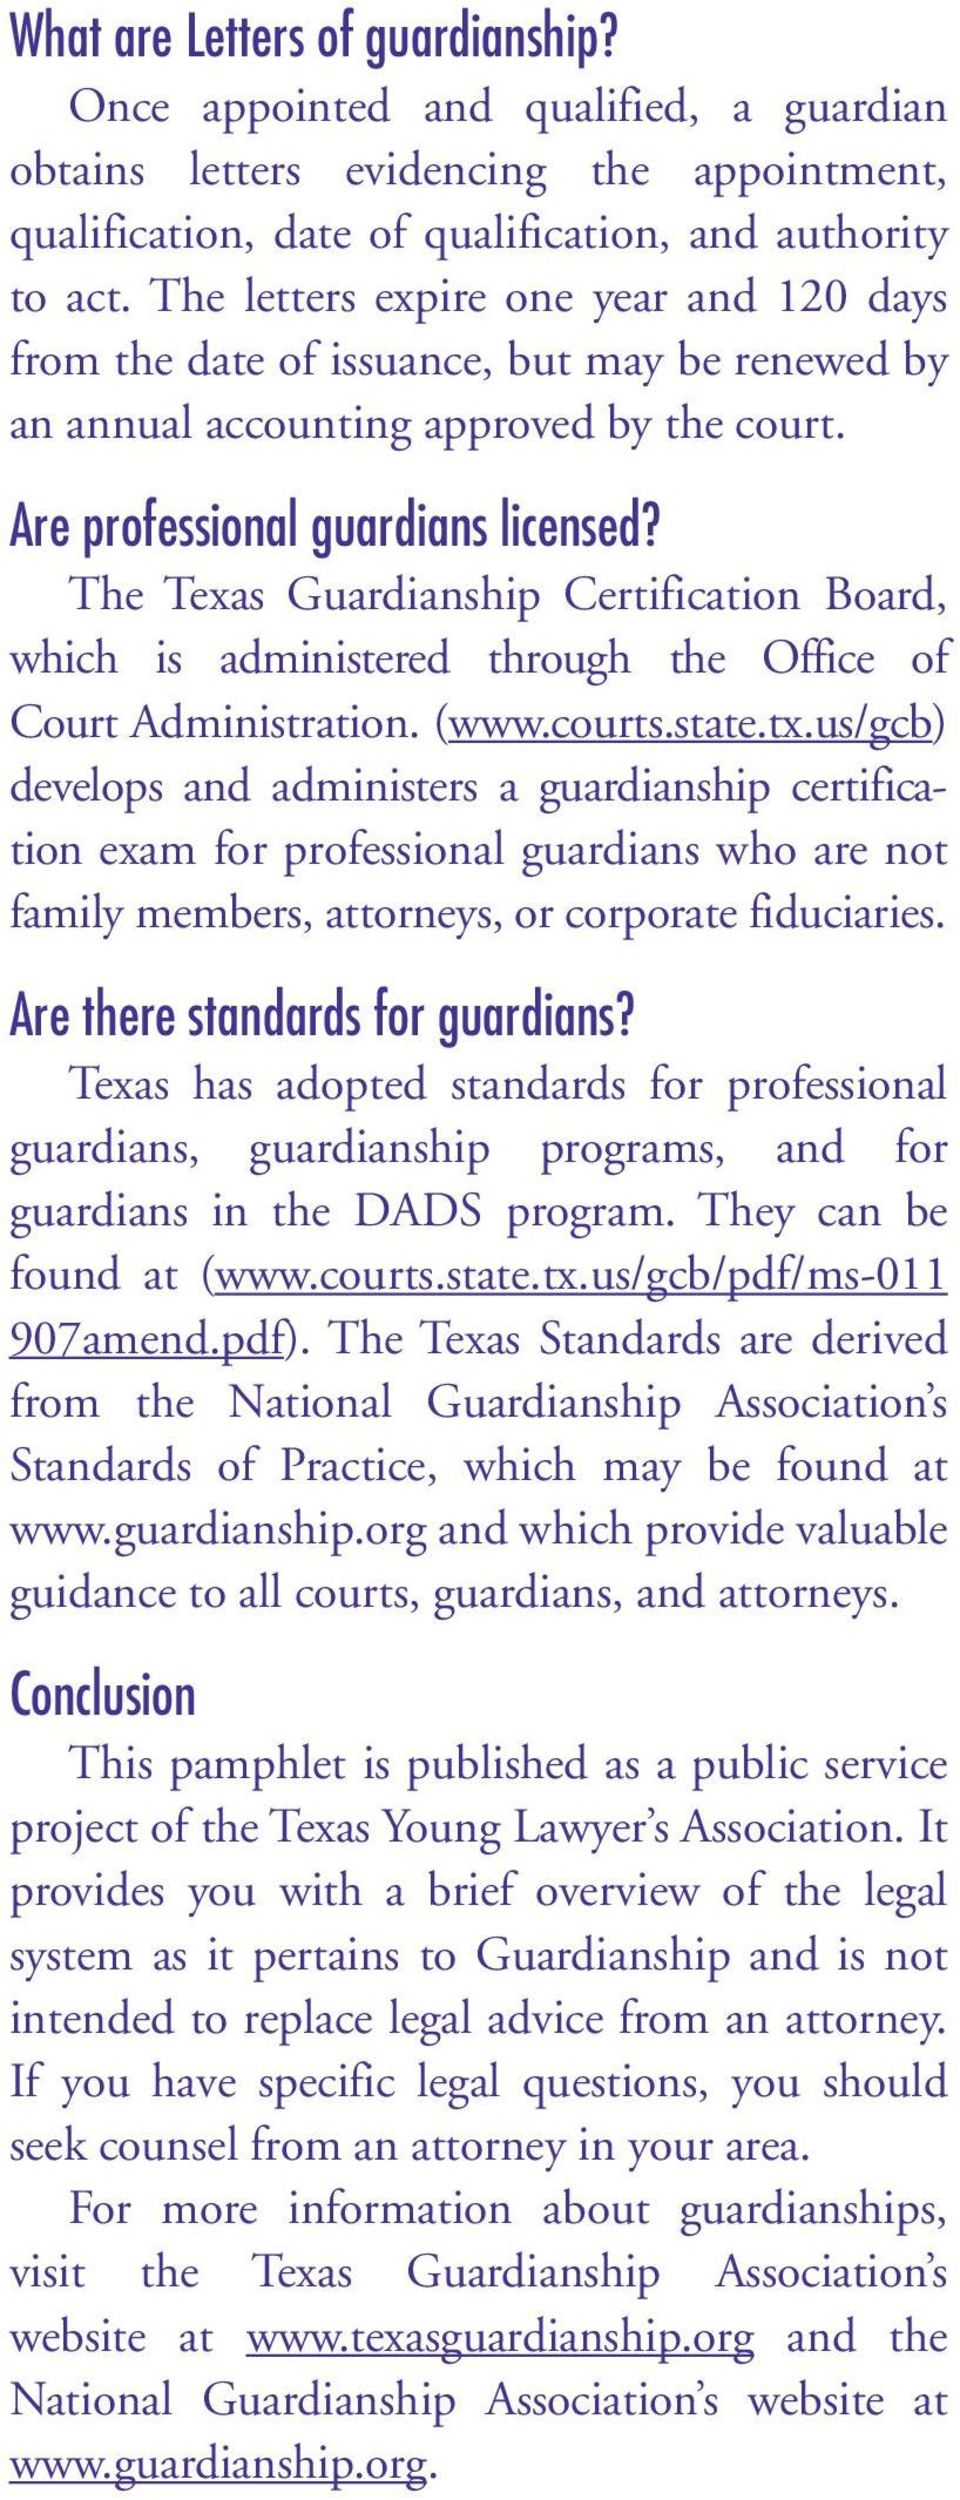 The Texas Guardianship Certification Board, which is administered through the Office of Court Administration. (www.courts.state.tx.